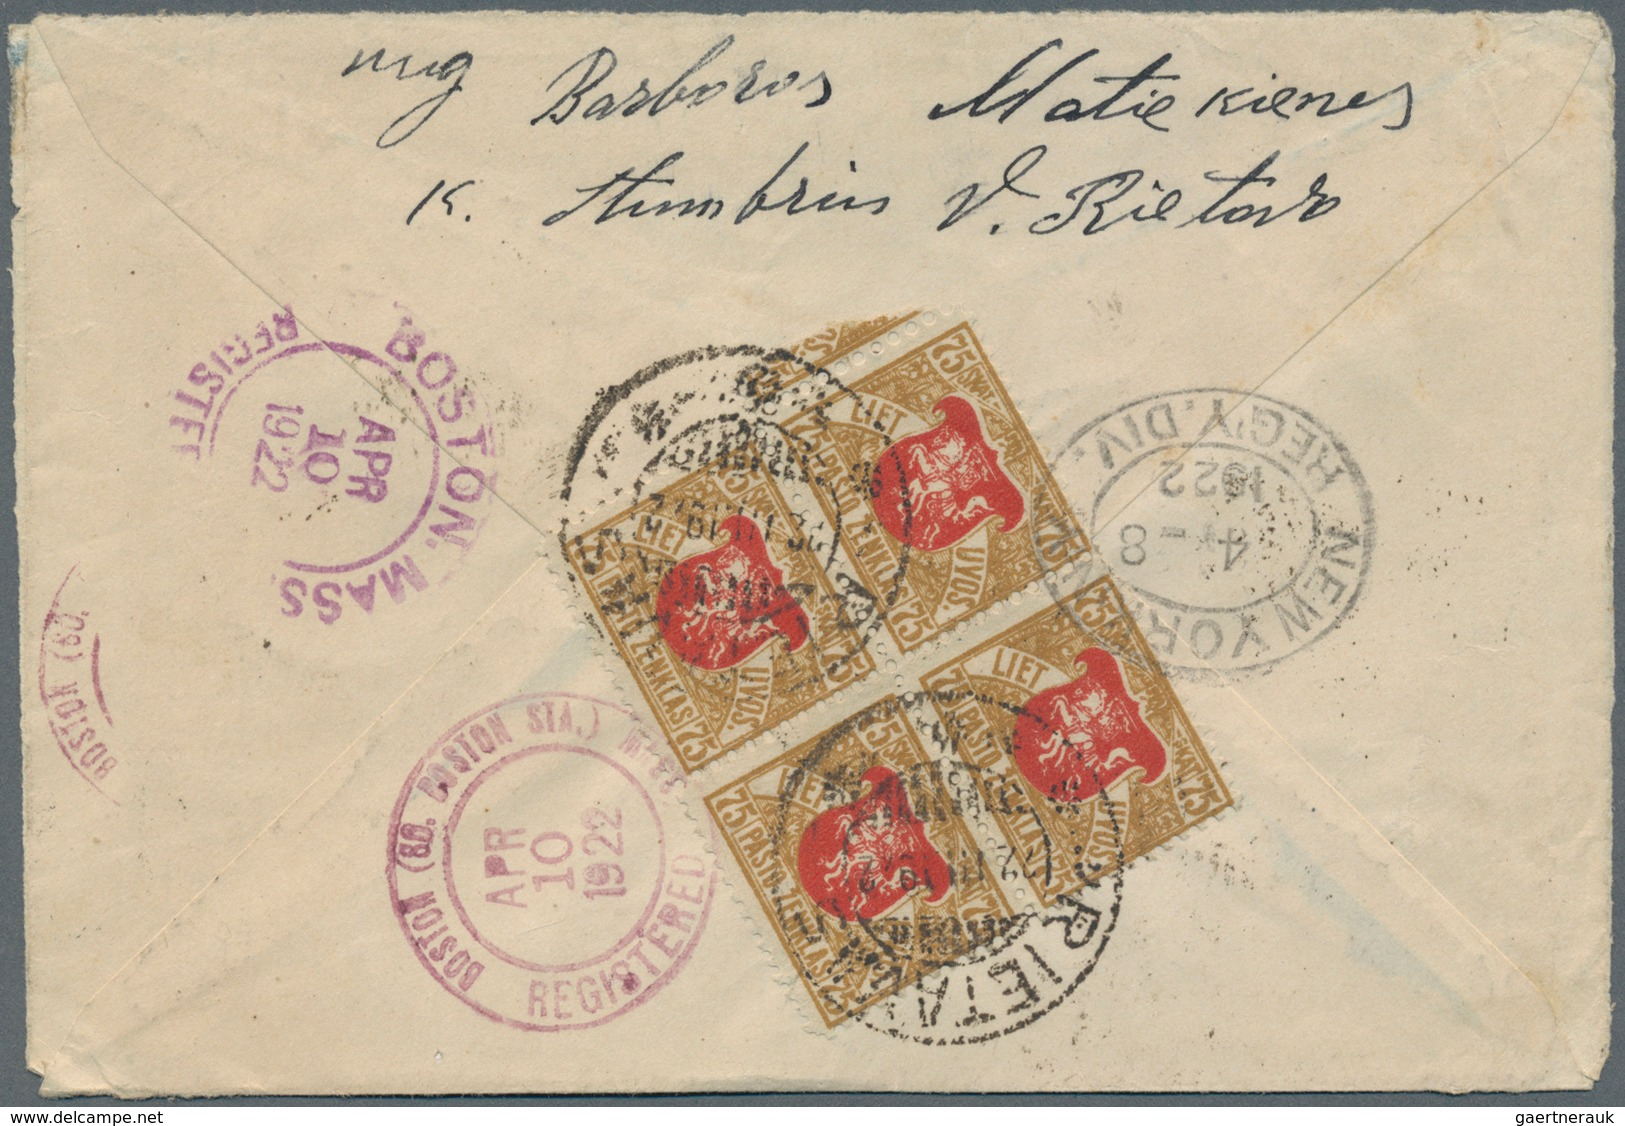 Lettland: 1922, Registered Cover, Opend At Three Sides, Stains, To USA Franked 5a Red And Blue-green - Lettland